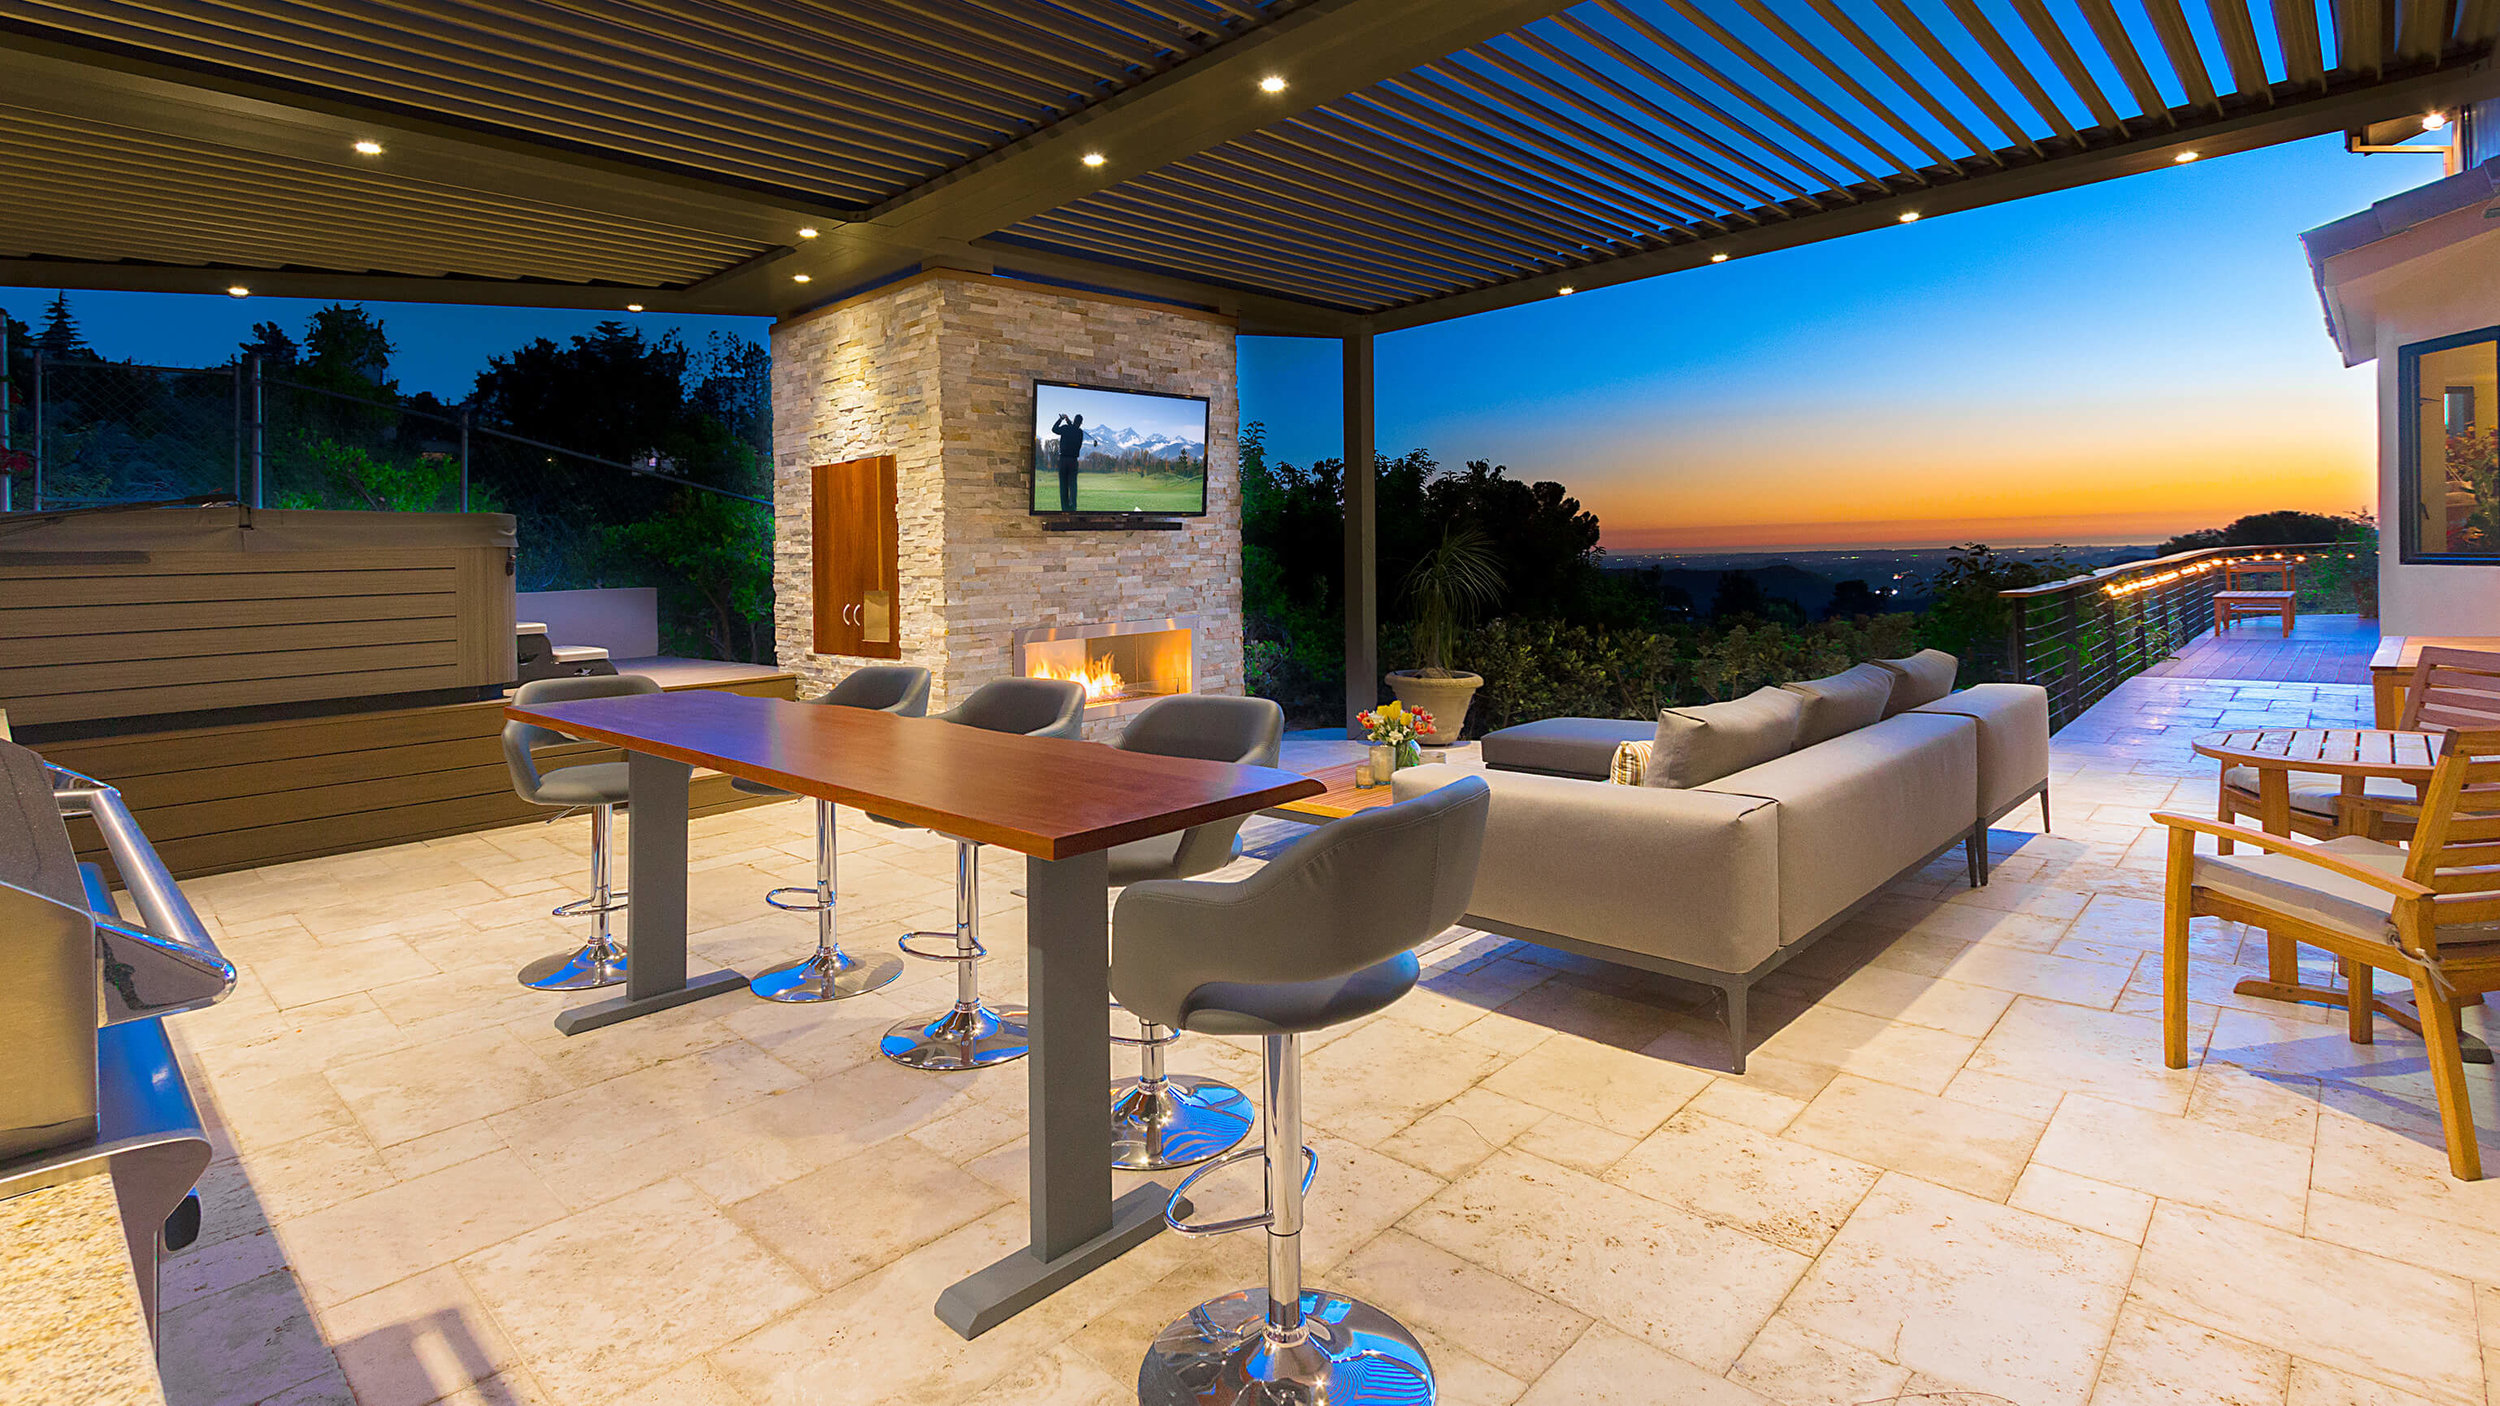 Garden Living - Pergolas, Cabanas, Shade Structures, Outdoor Kitchen.jpg